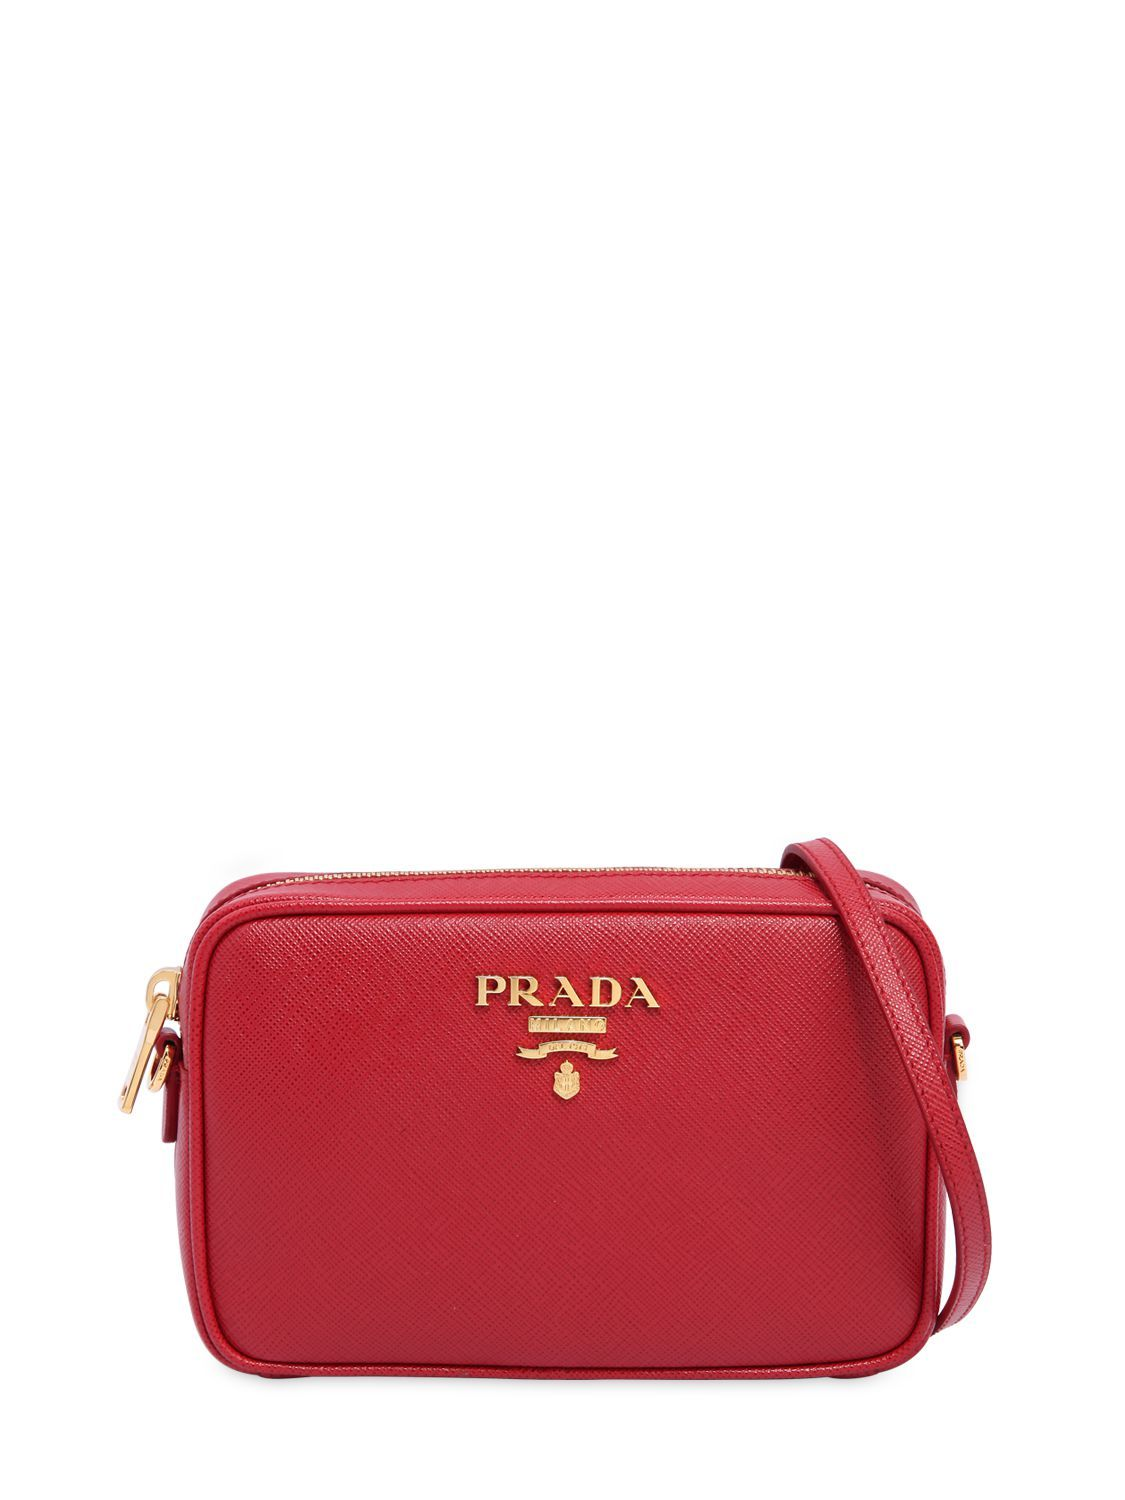 63cc0fe67979 PRADA SAFFIANO LEATHER CAMERA BAG. #prada #bags #shoulder bags #leather  #lining #